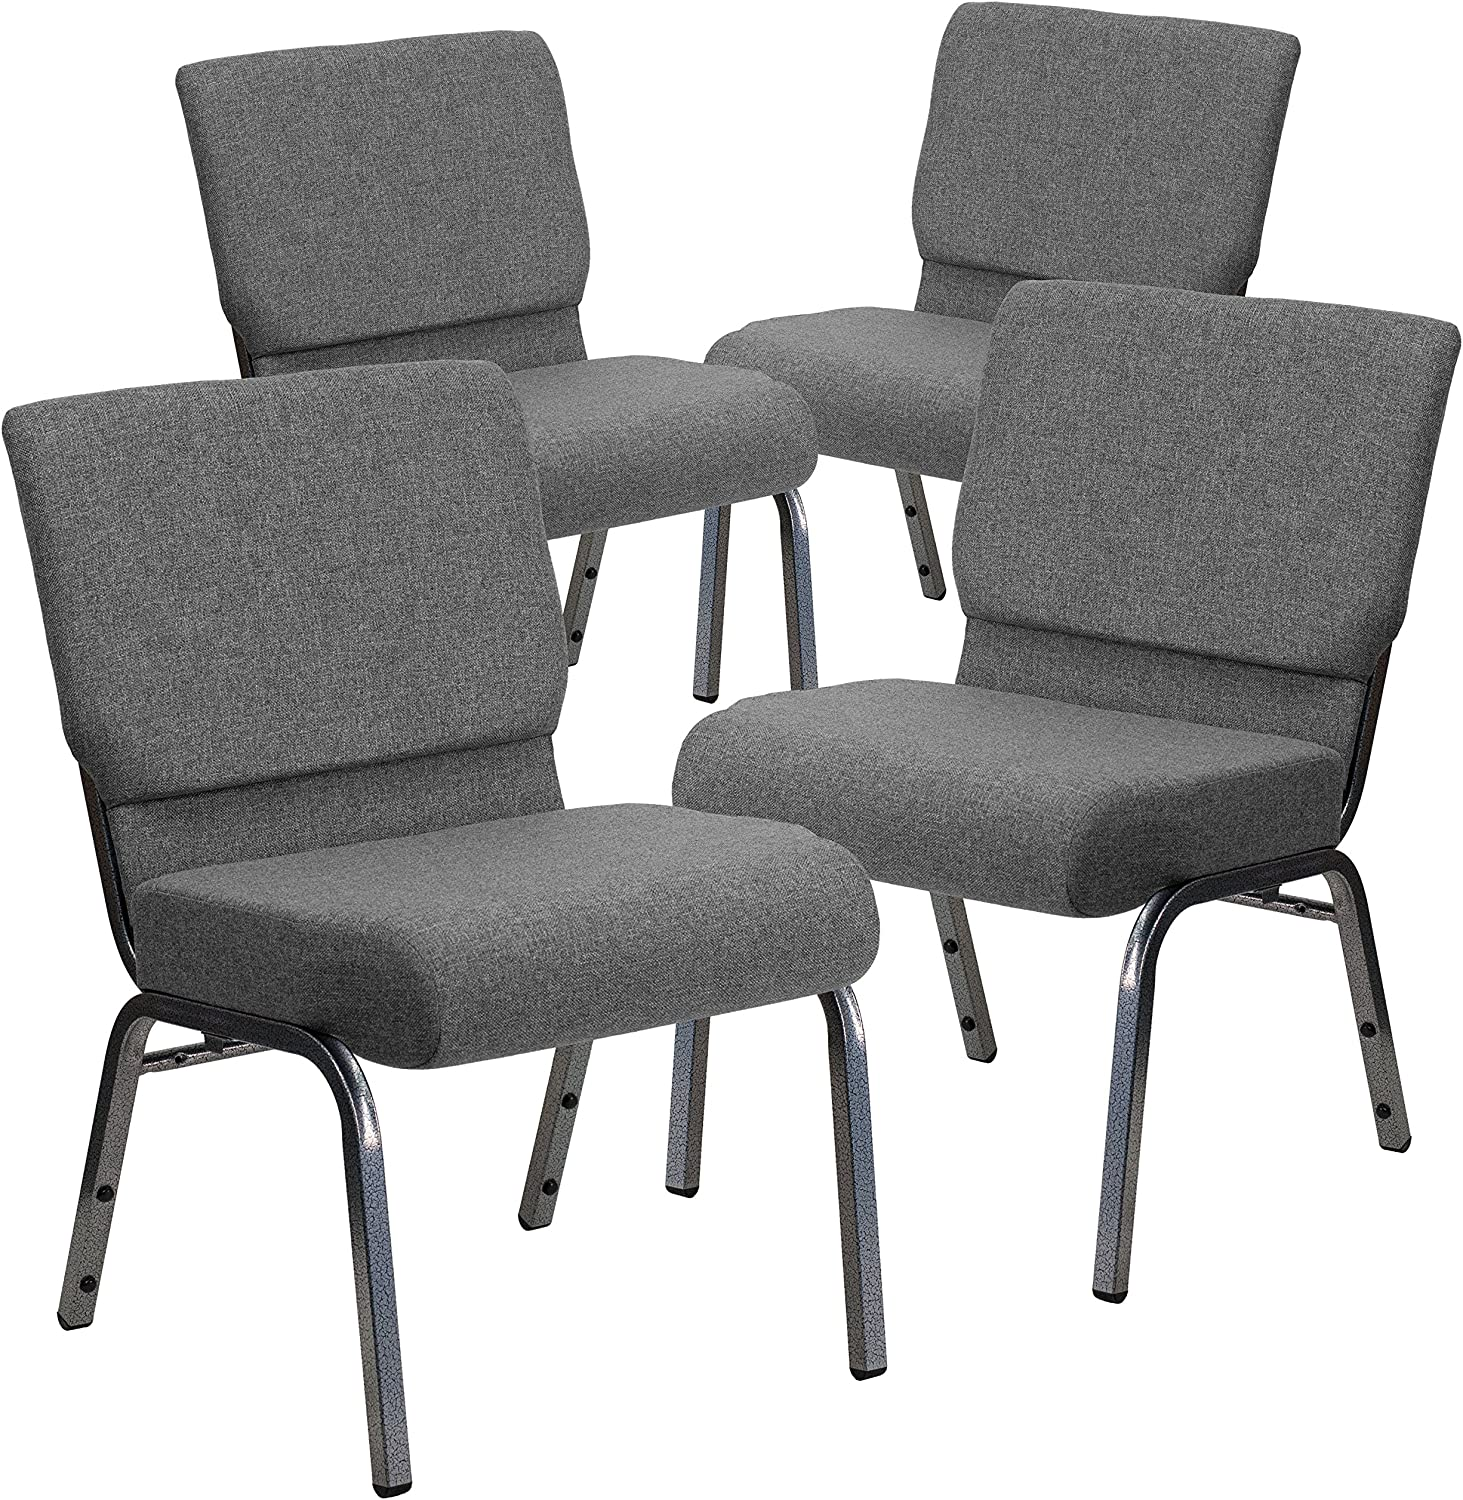 Flash Furniture 4 Pk. HERCULES Series 21''W Stacking Church Chair in Gray Fabric - Silver Vein Frame